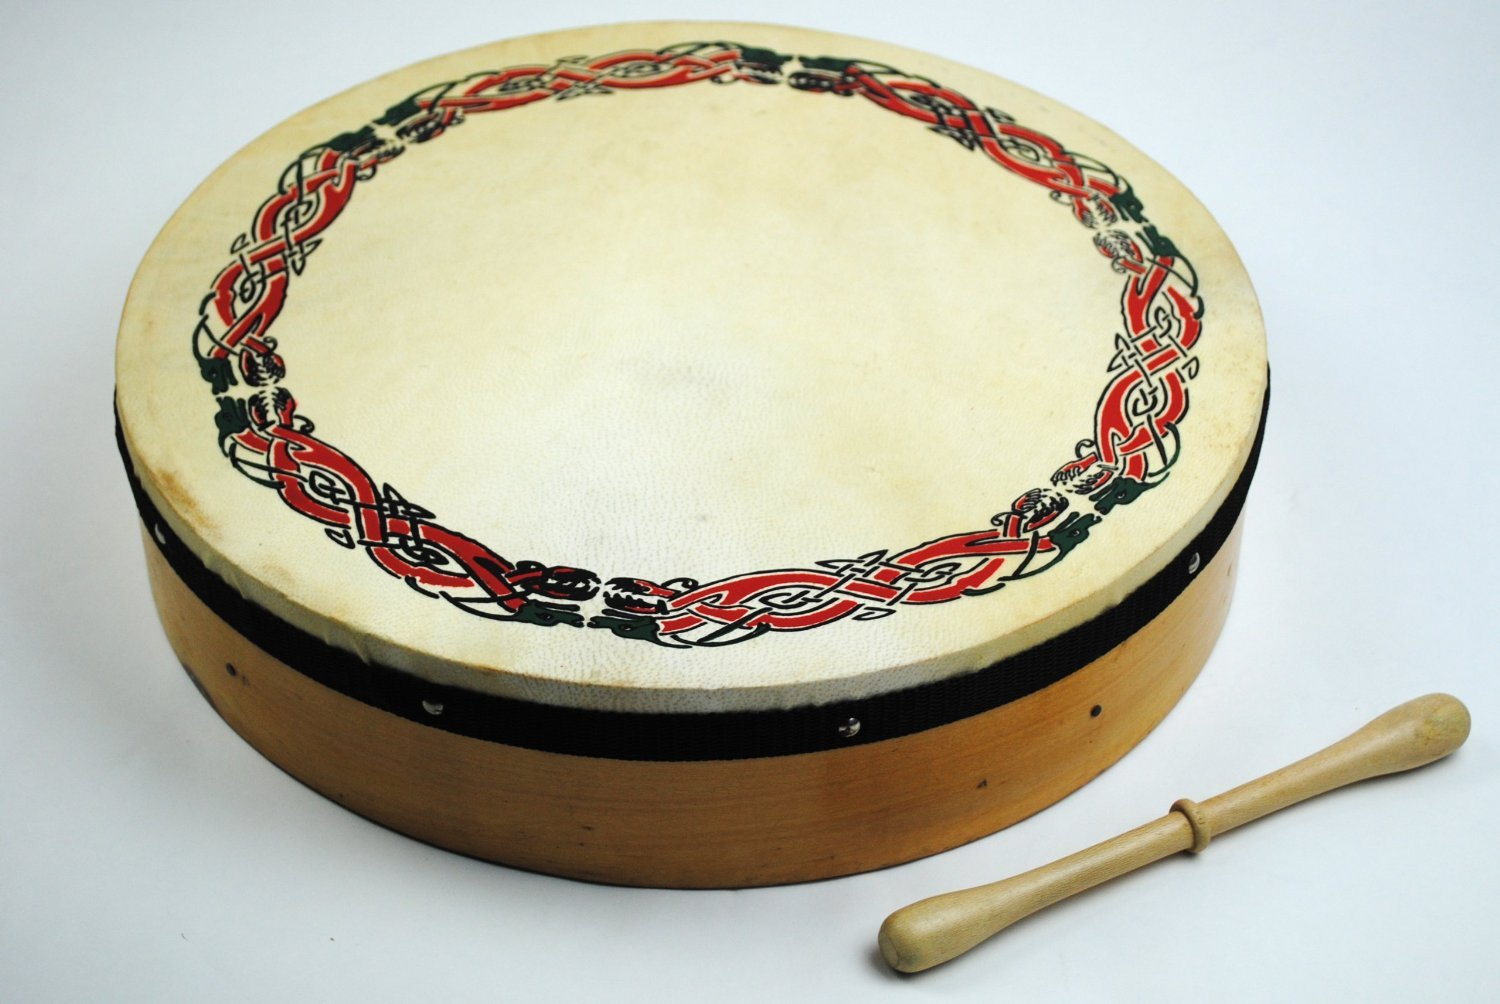 Original 16 Inch Irish Bodhran with Celtic Design and Rosewood Beater